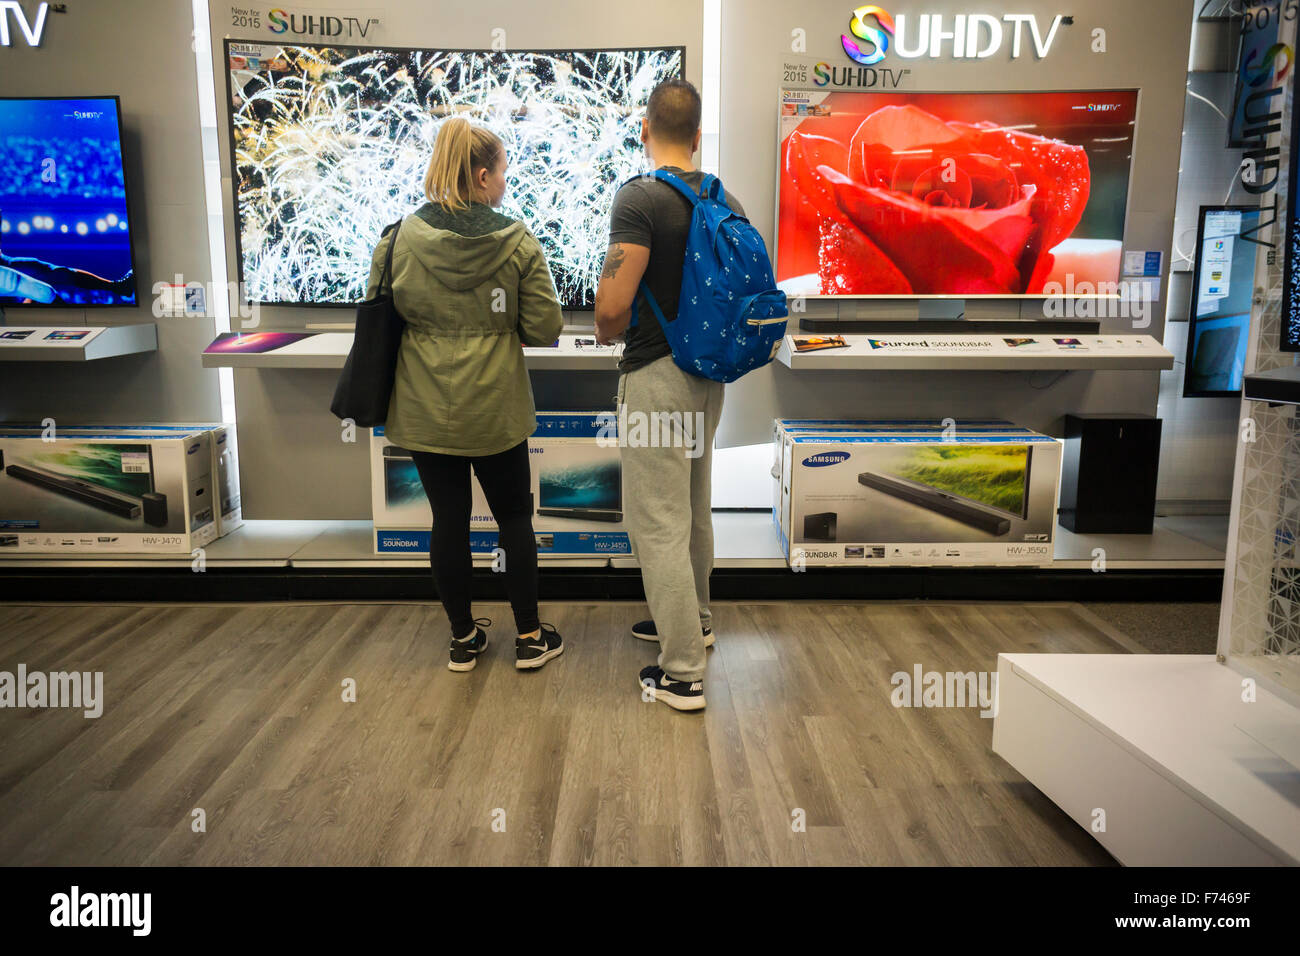 Customers browse Samsung 4K Ultra High Definition televisions in a Best Buy electronics store in Union Square in - Stock Image